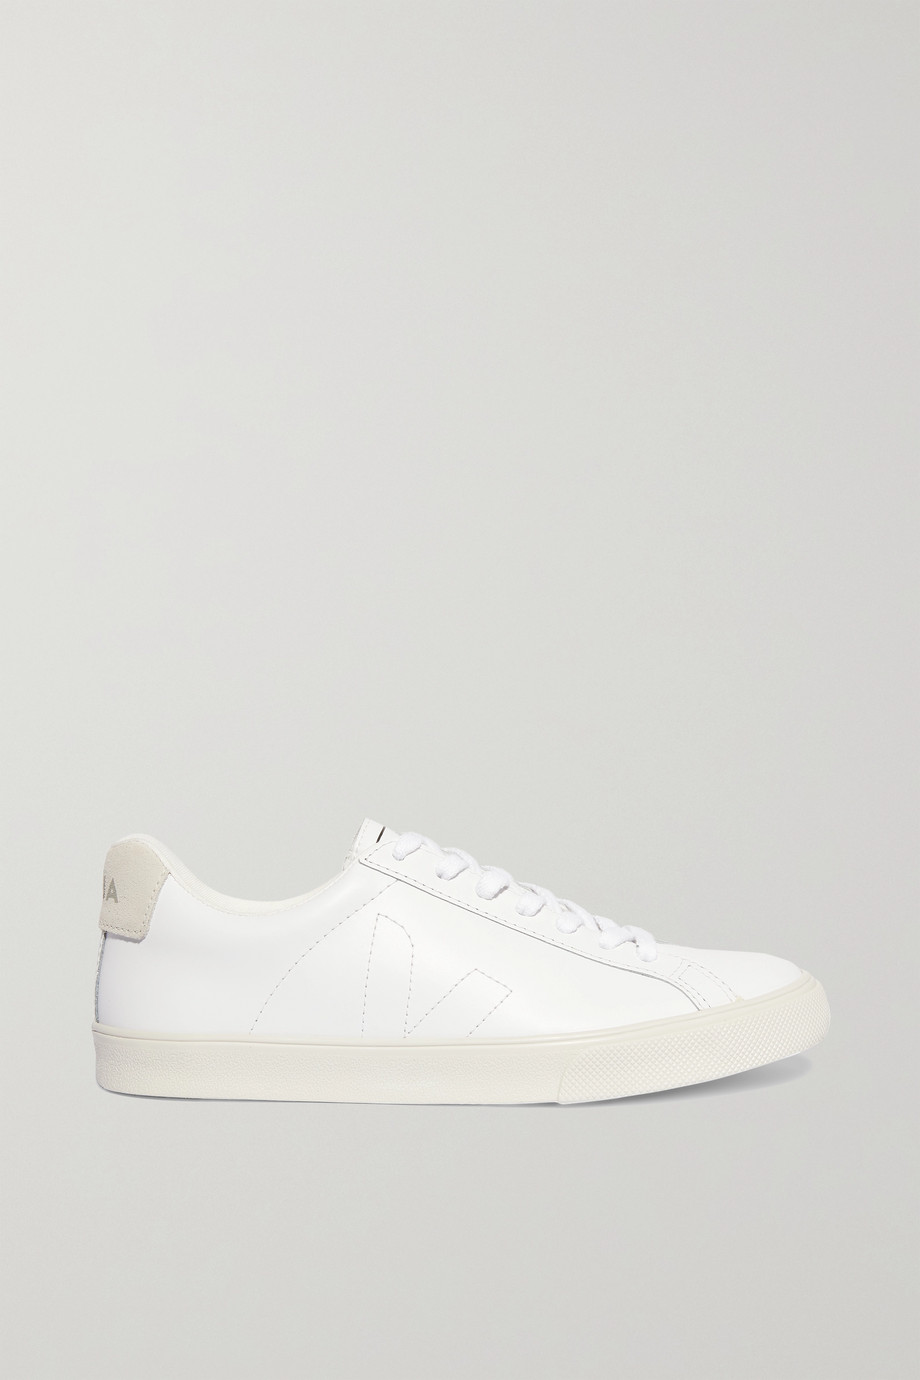 VEJA + NET SUSTAIN Esplar suede-trimmed leather sneakers